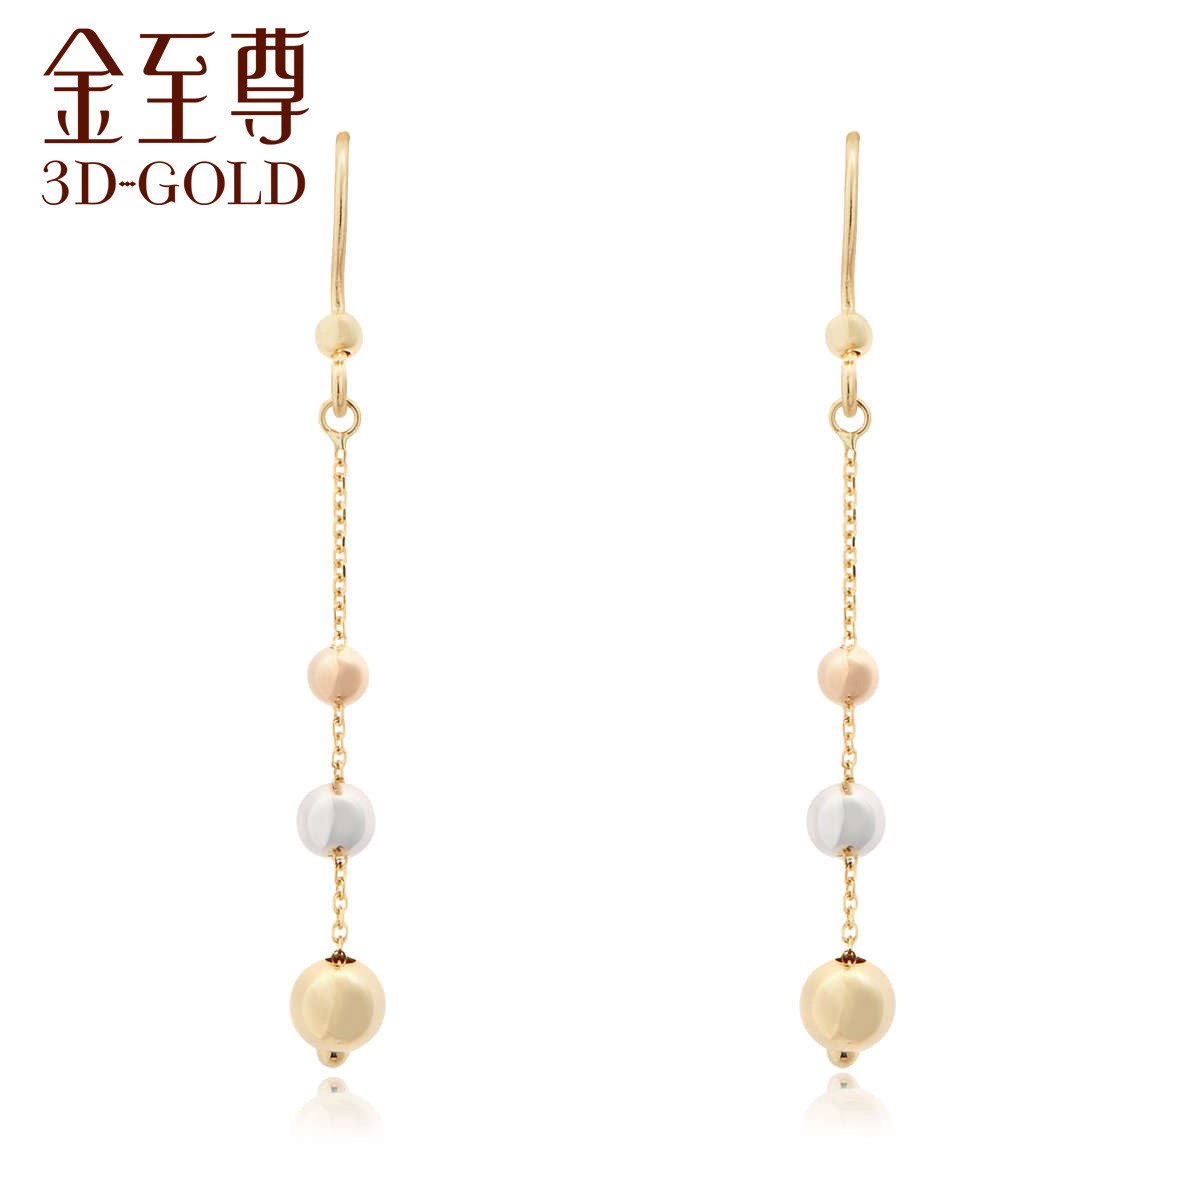 18K Multi-Color Gold Earrings